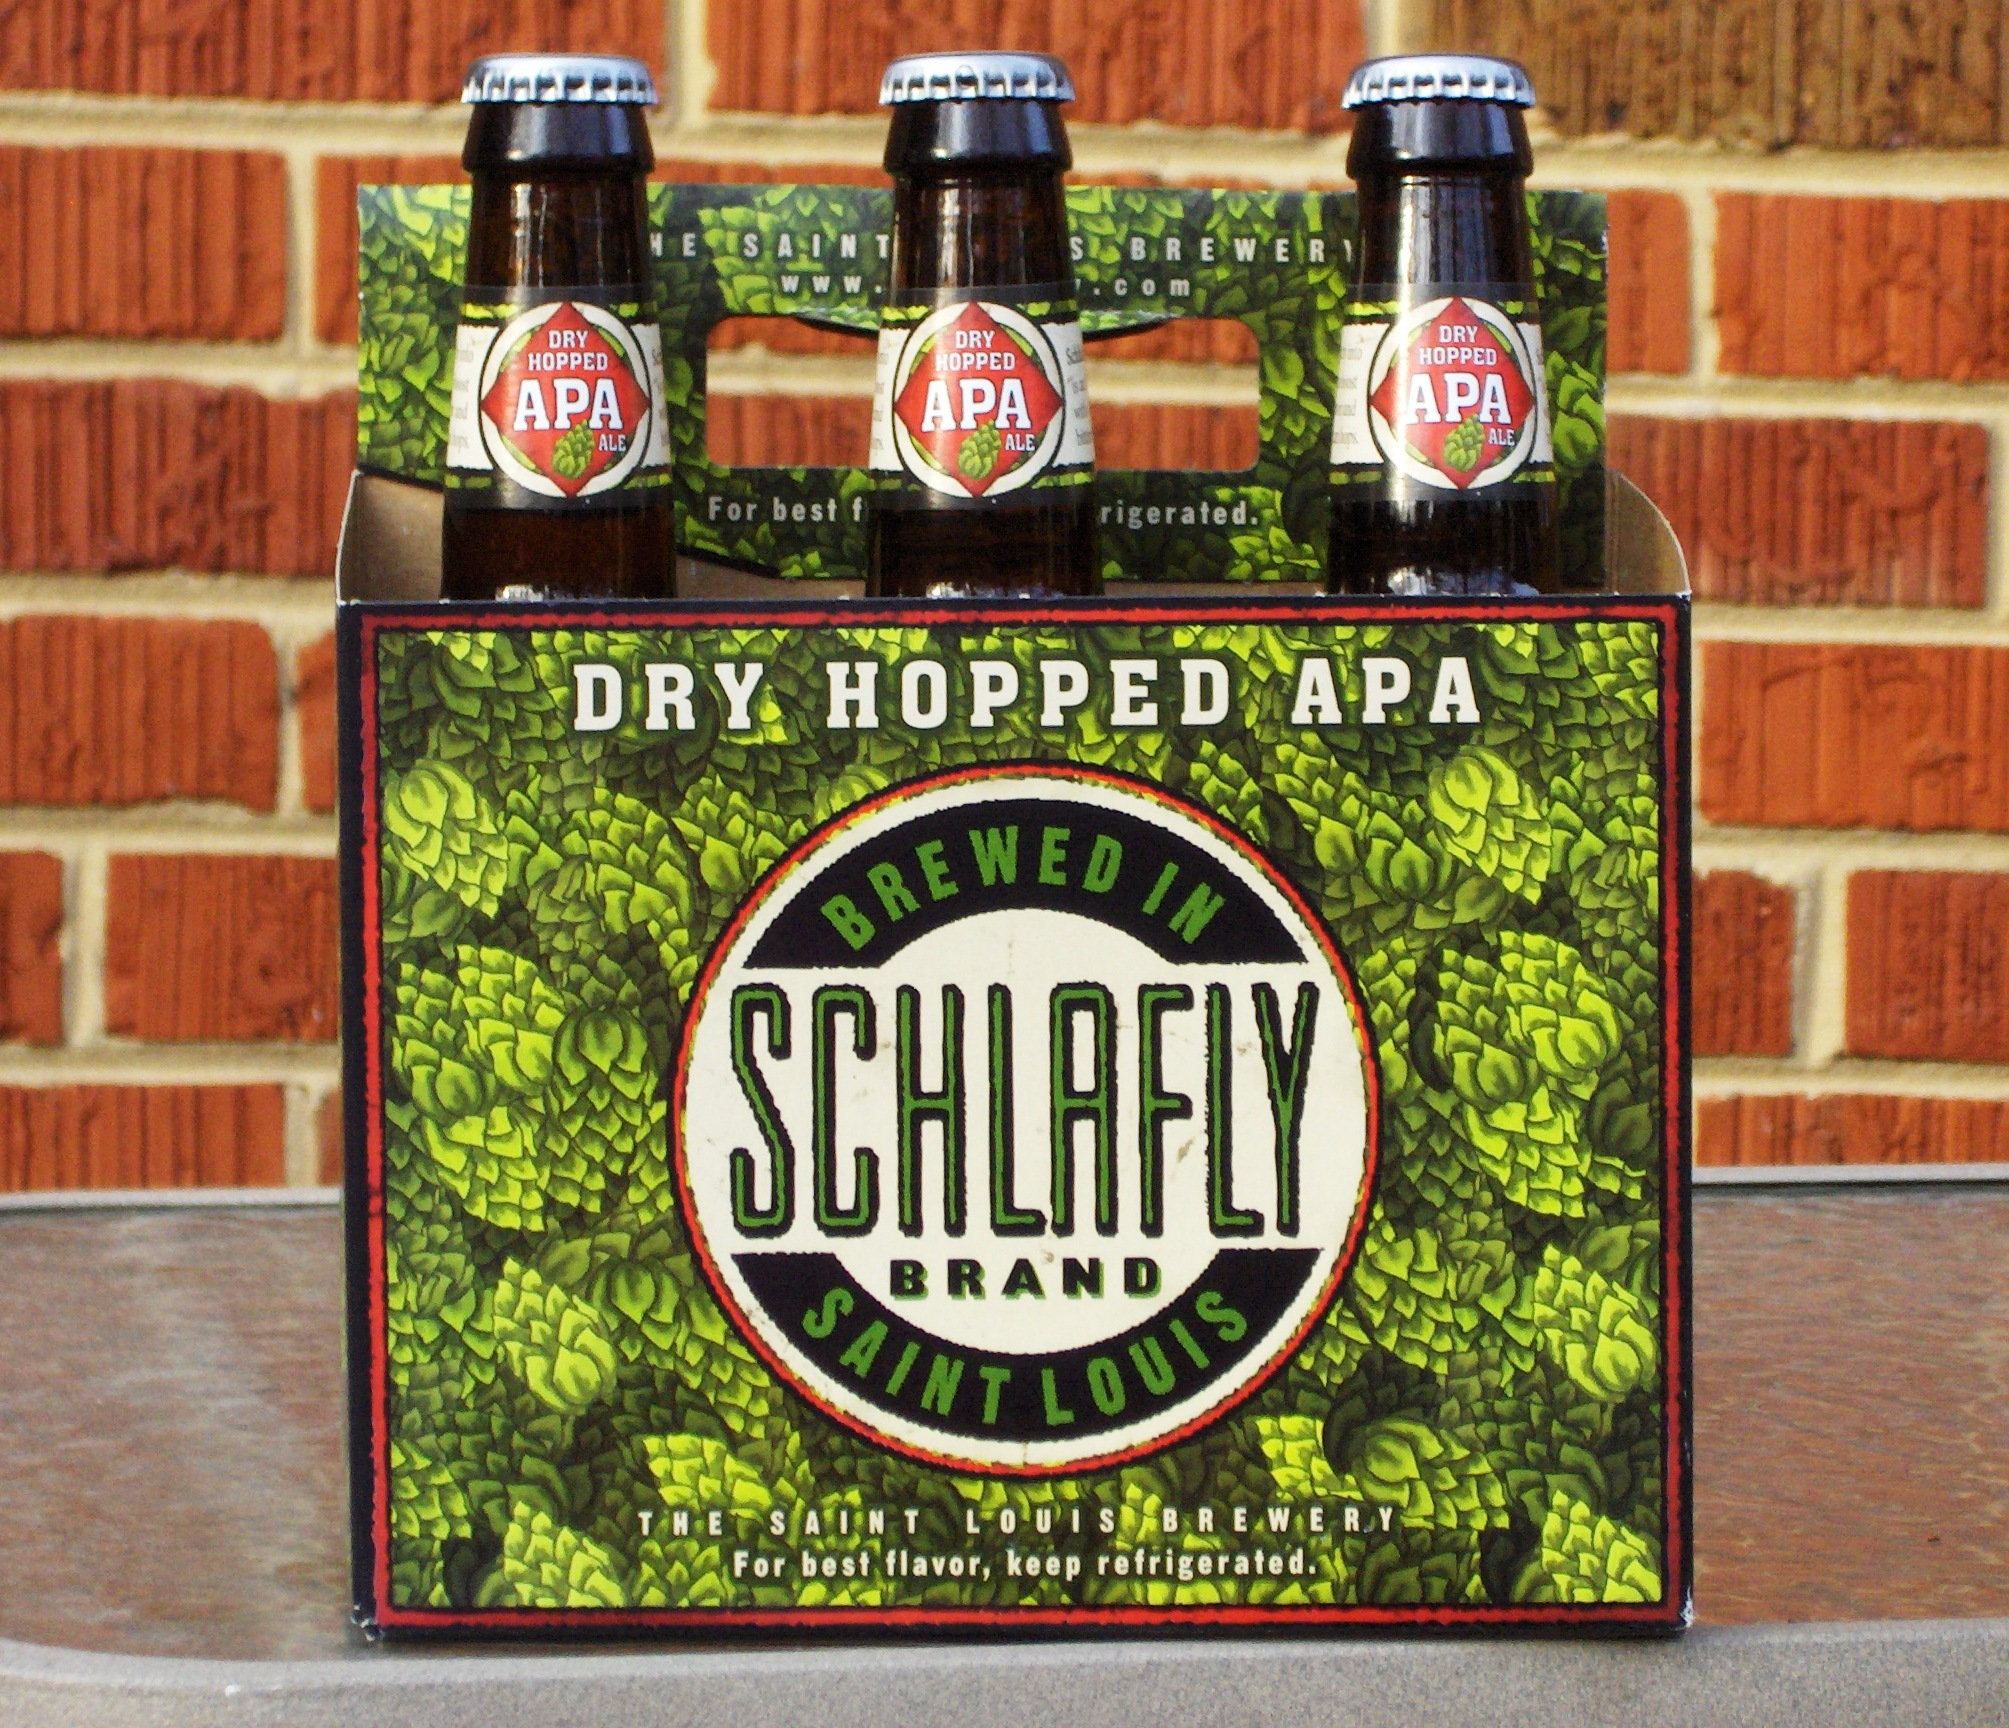 Schlafly Beer The St Louis Brewery